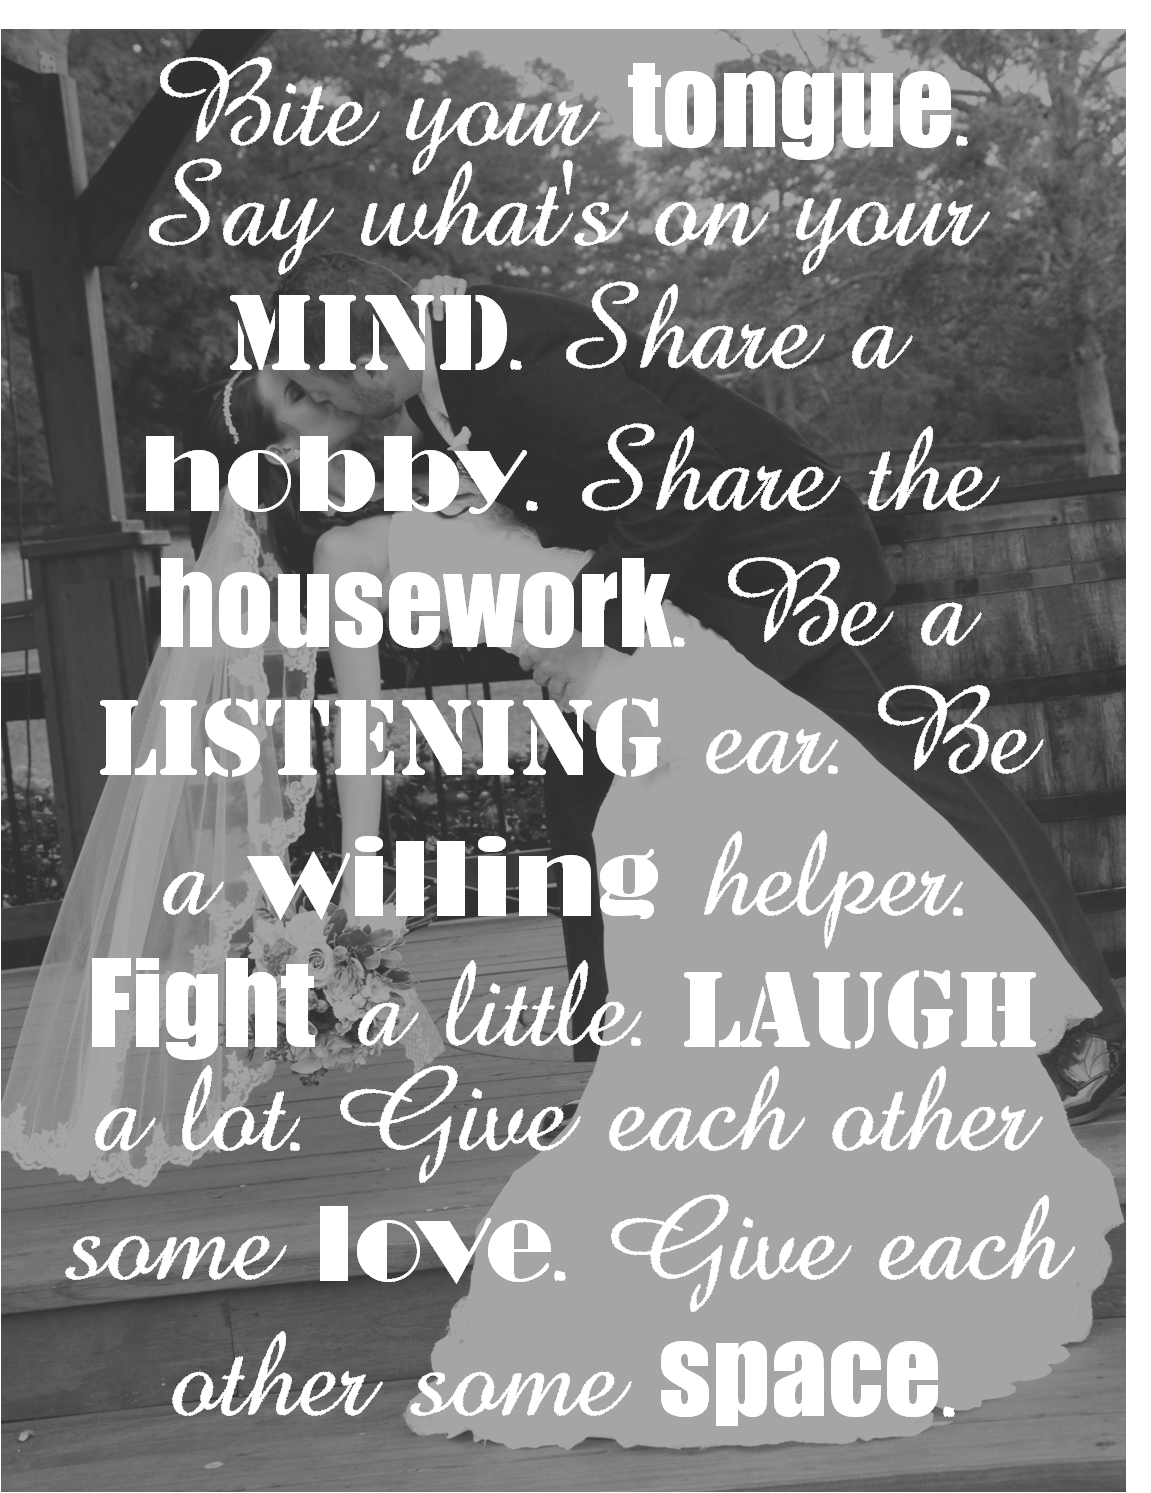 Top 10 Advice for Newlyweds  Wise Words and Advice